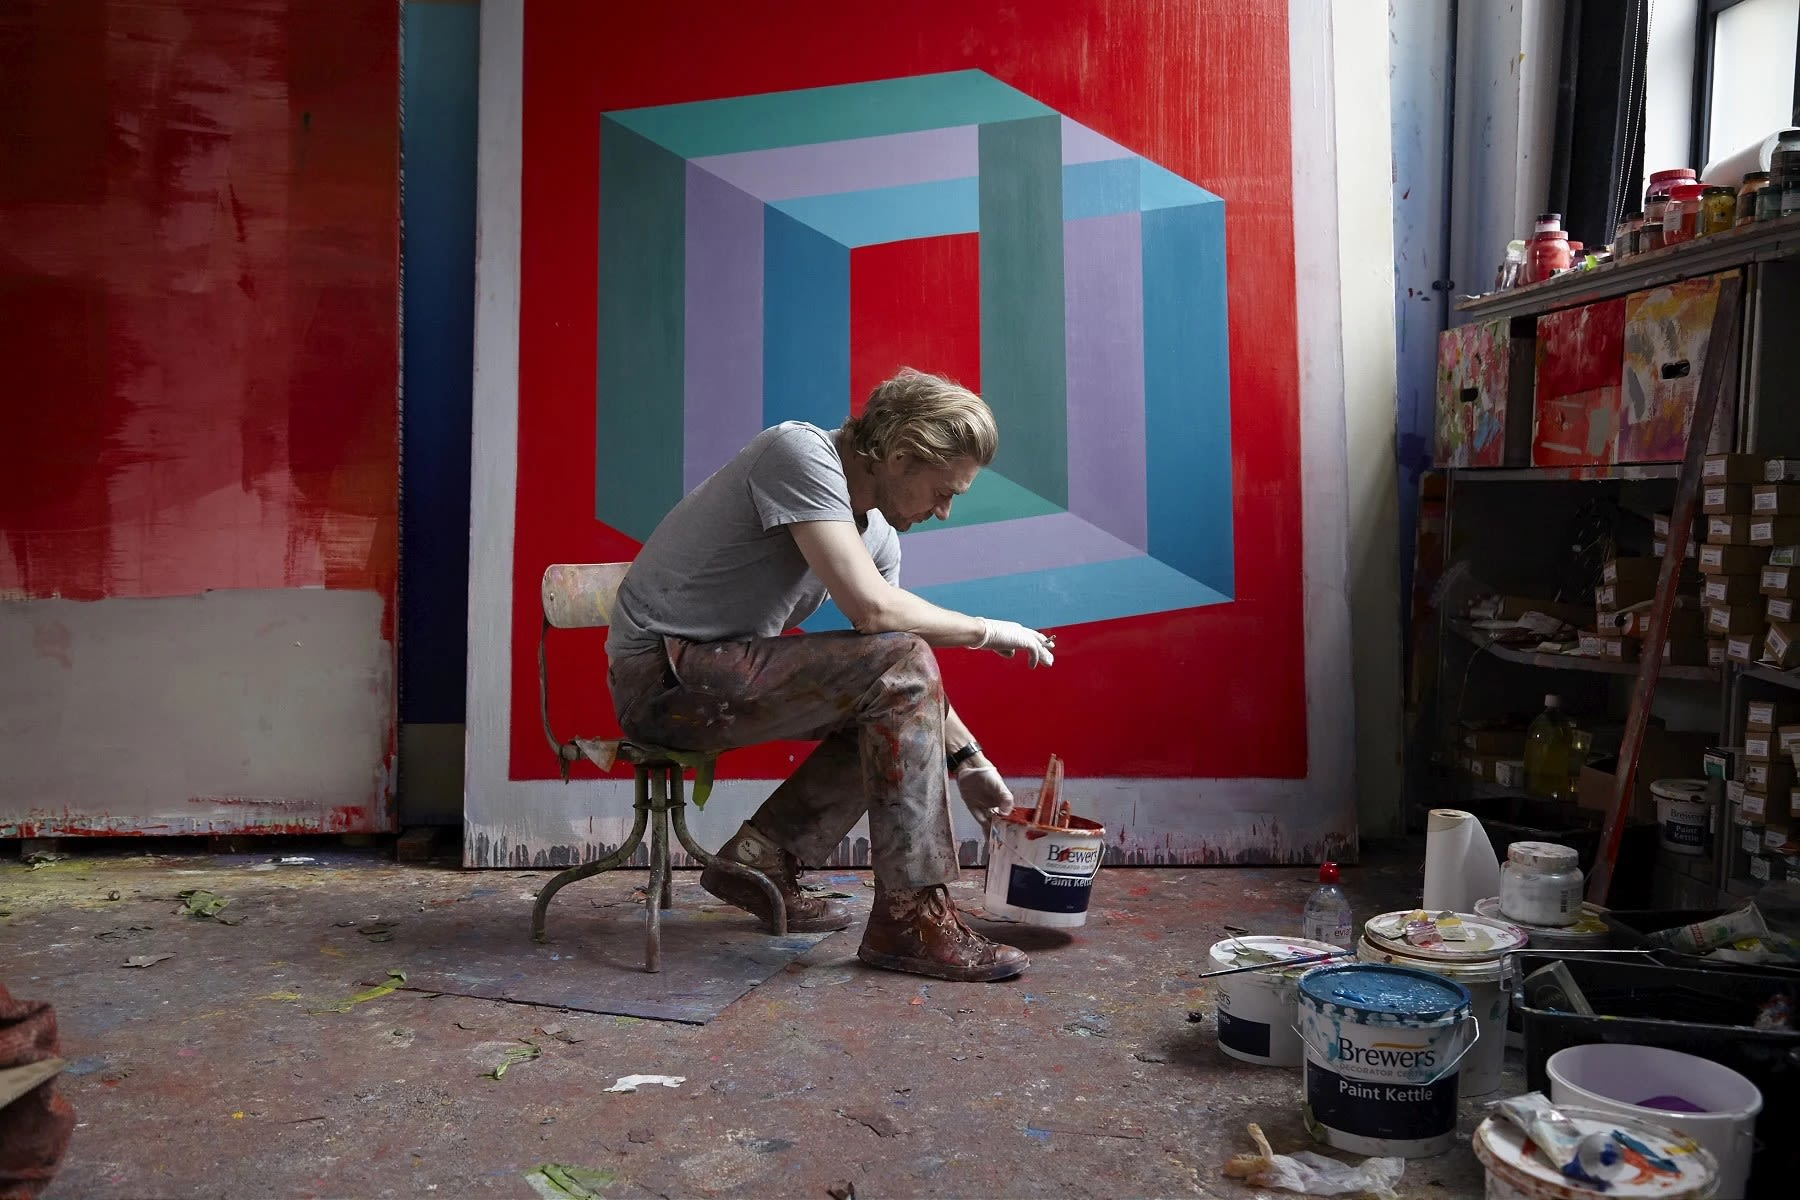 Nostalgia and the North , 3 Things To Know About Harland Miller